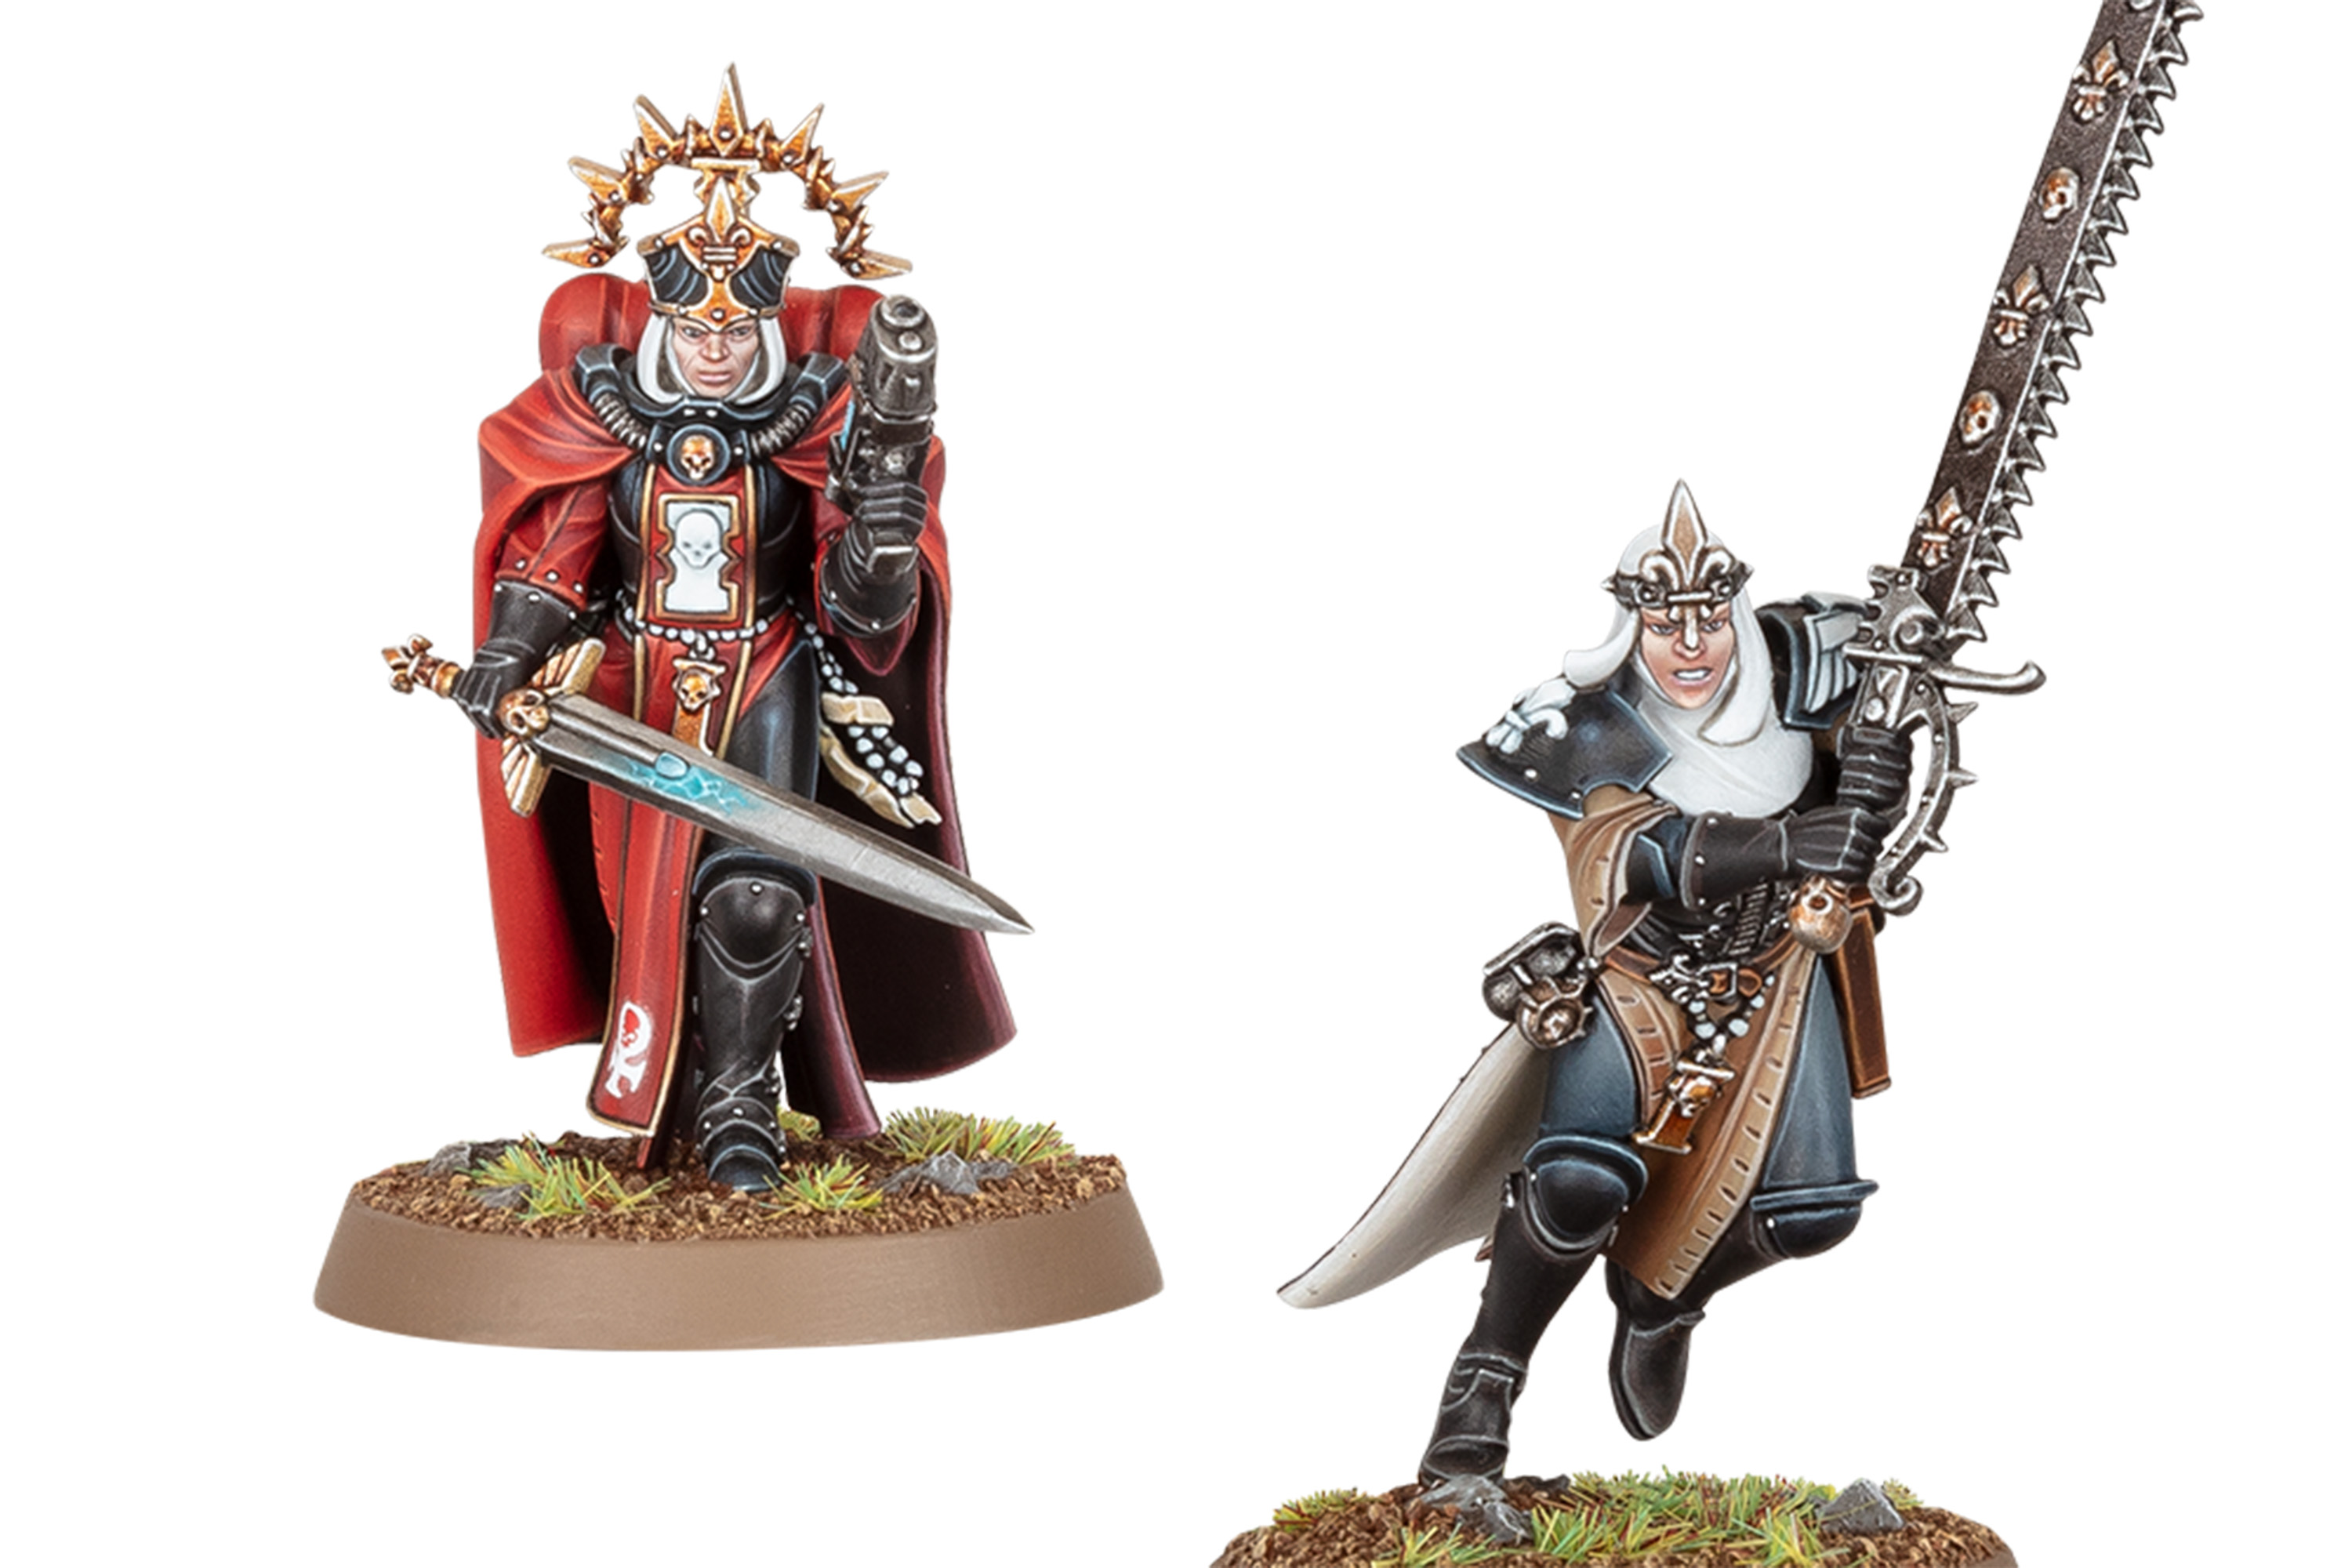 Sisters of Battle Novitiates unveiled at Gen Con 2021. A prioress is dressed in fine robes, while a new member of the Order carries a massive chainsword.